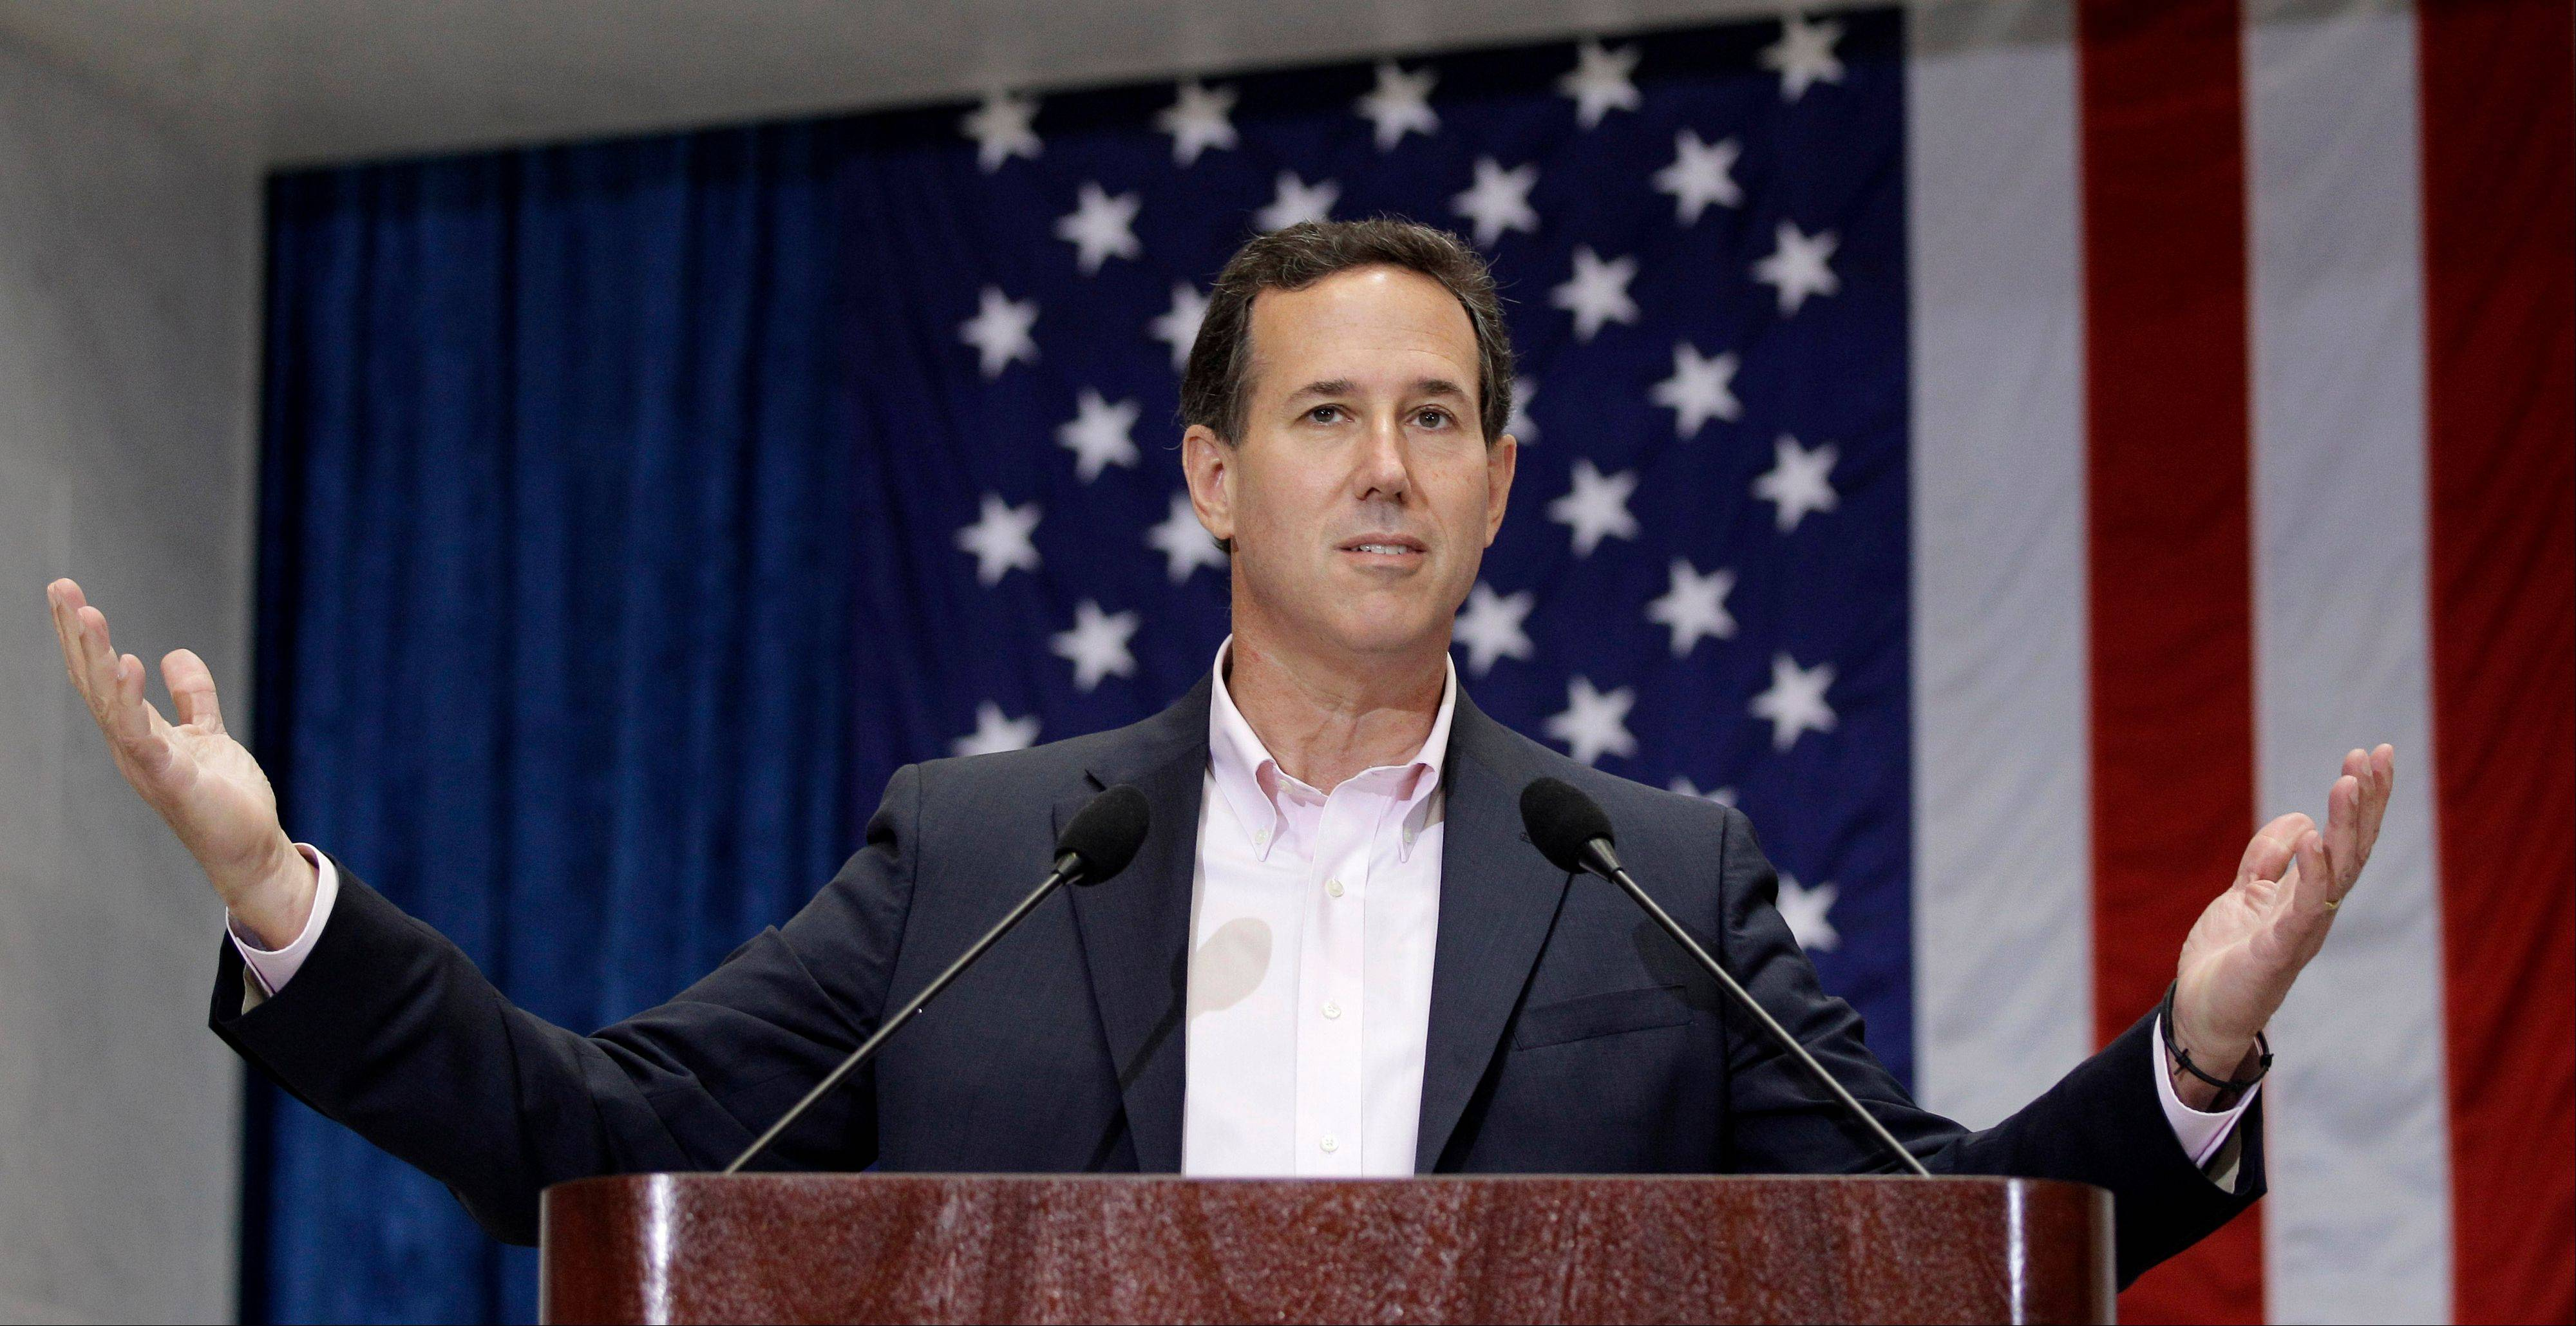 Republican presidential candidate, former Pennsylvania Sen. Rick Santorum speaks to USAA employees during a campaign stop at USAA, Thursday, March 22, 2012, in San Antonio.